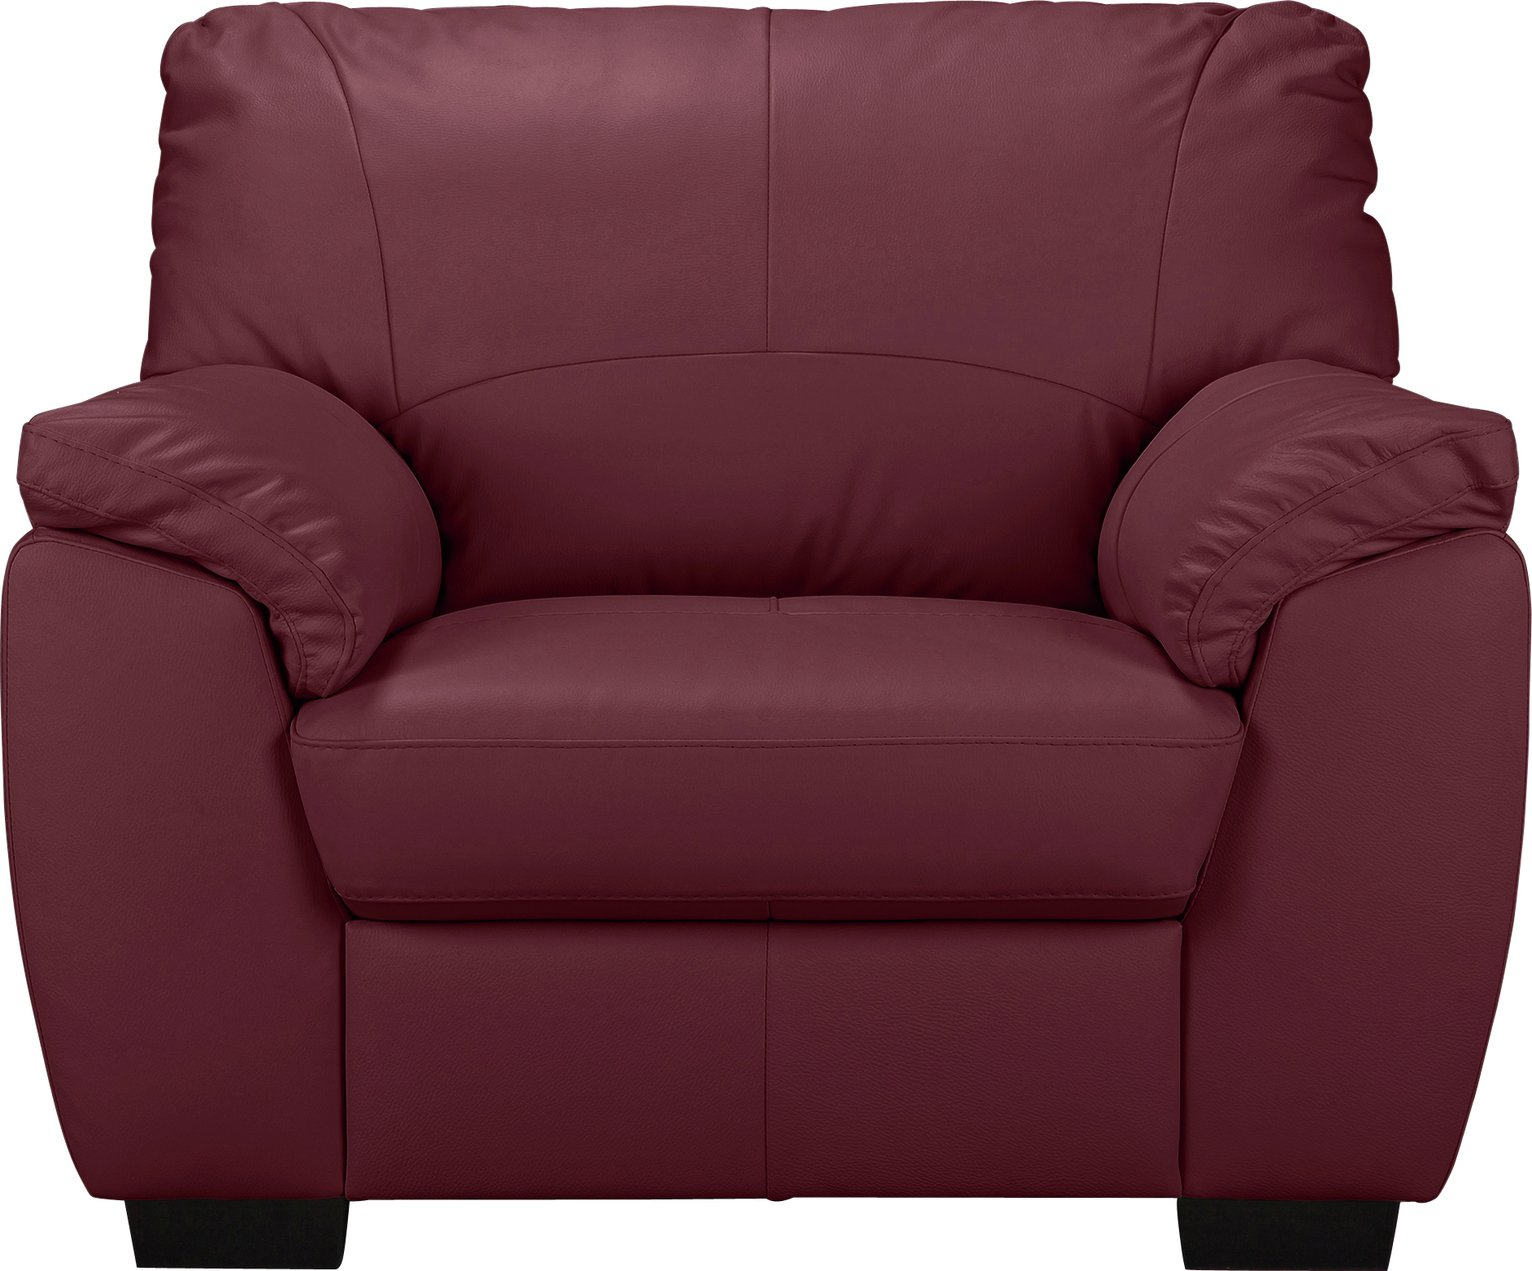 Buy Argos Home Milano Leather Armchair   Burgundy   Armchairs And Chairs    Argos